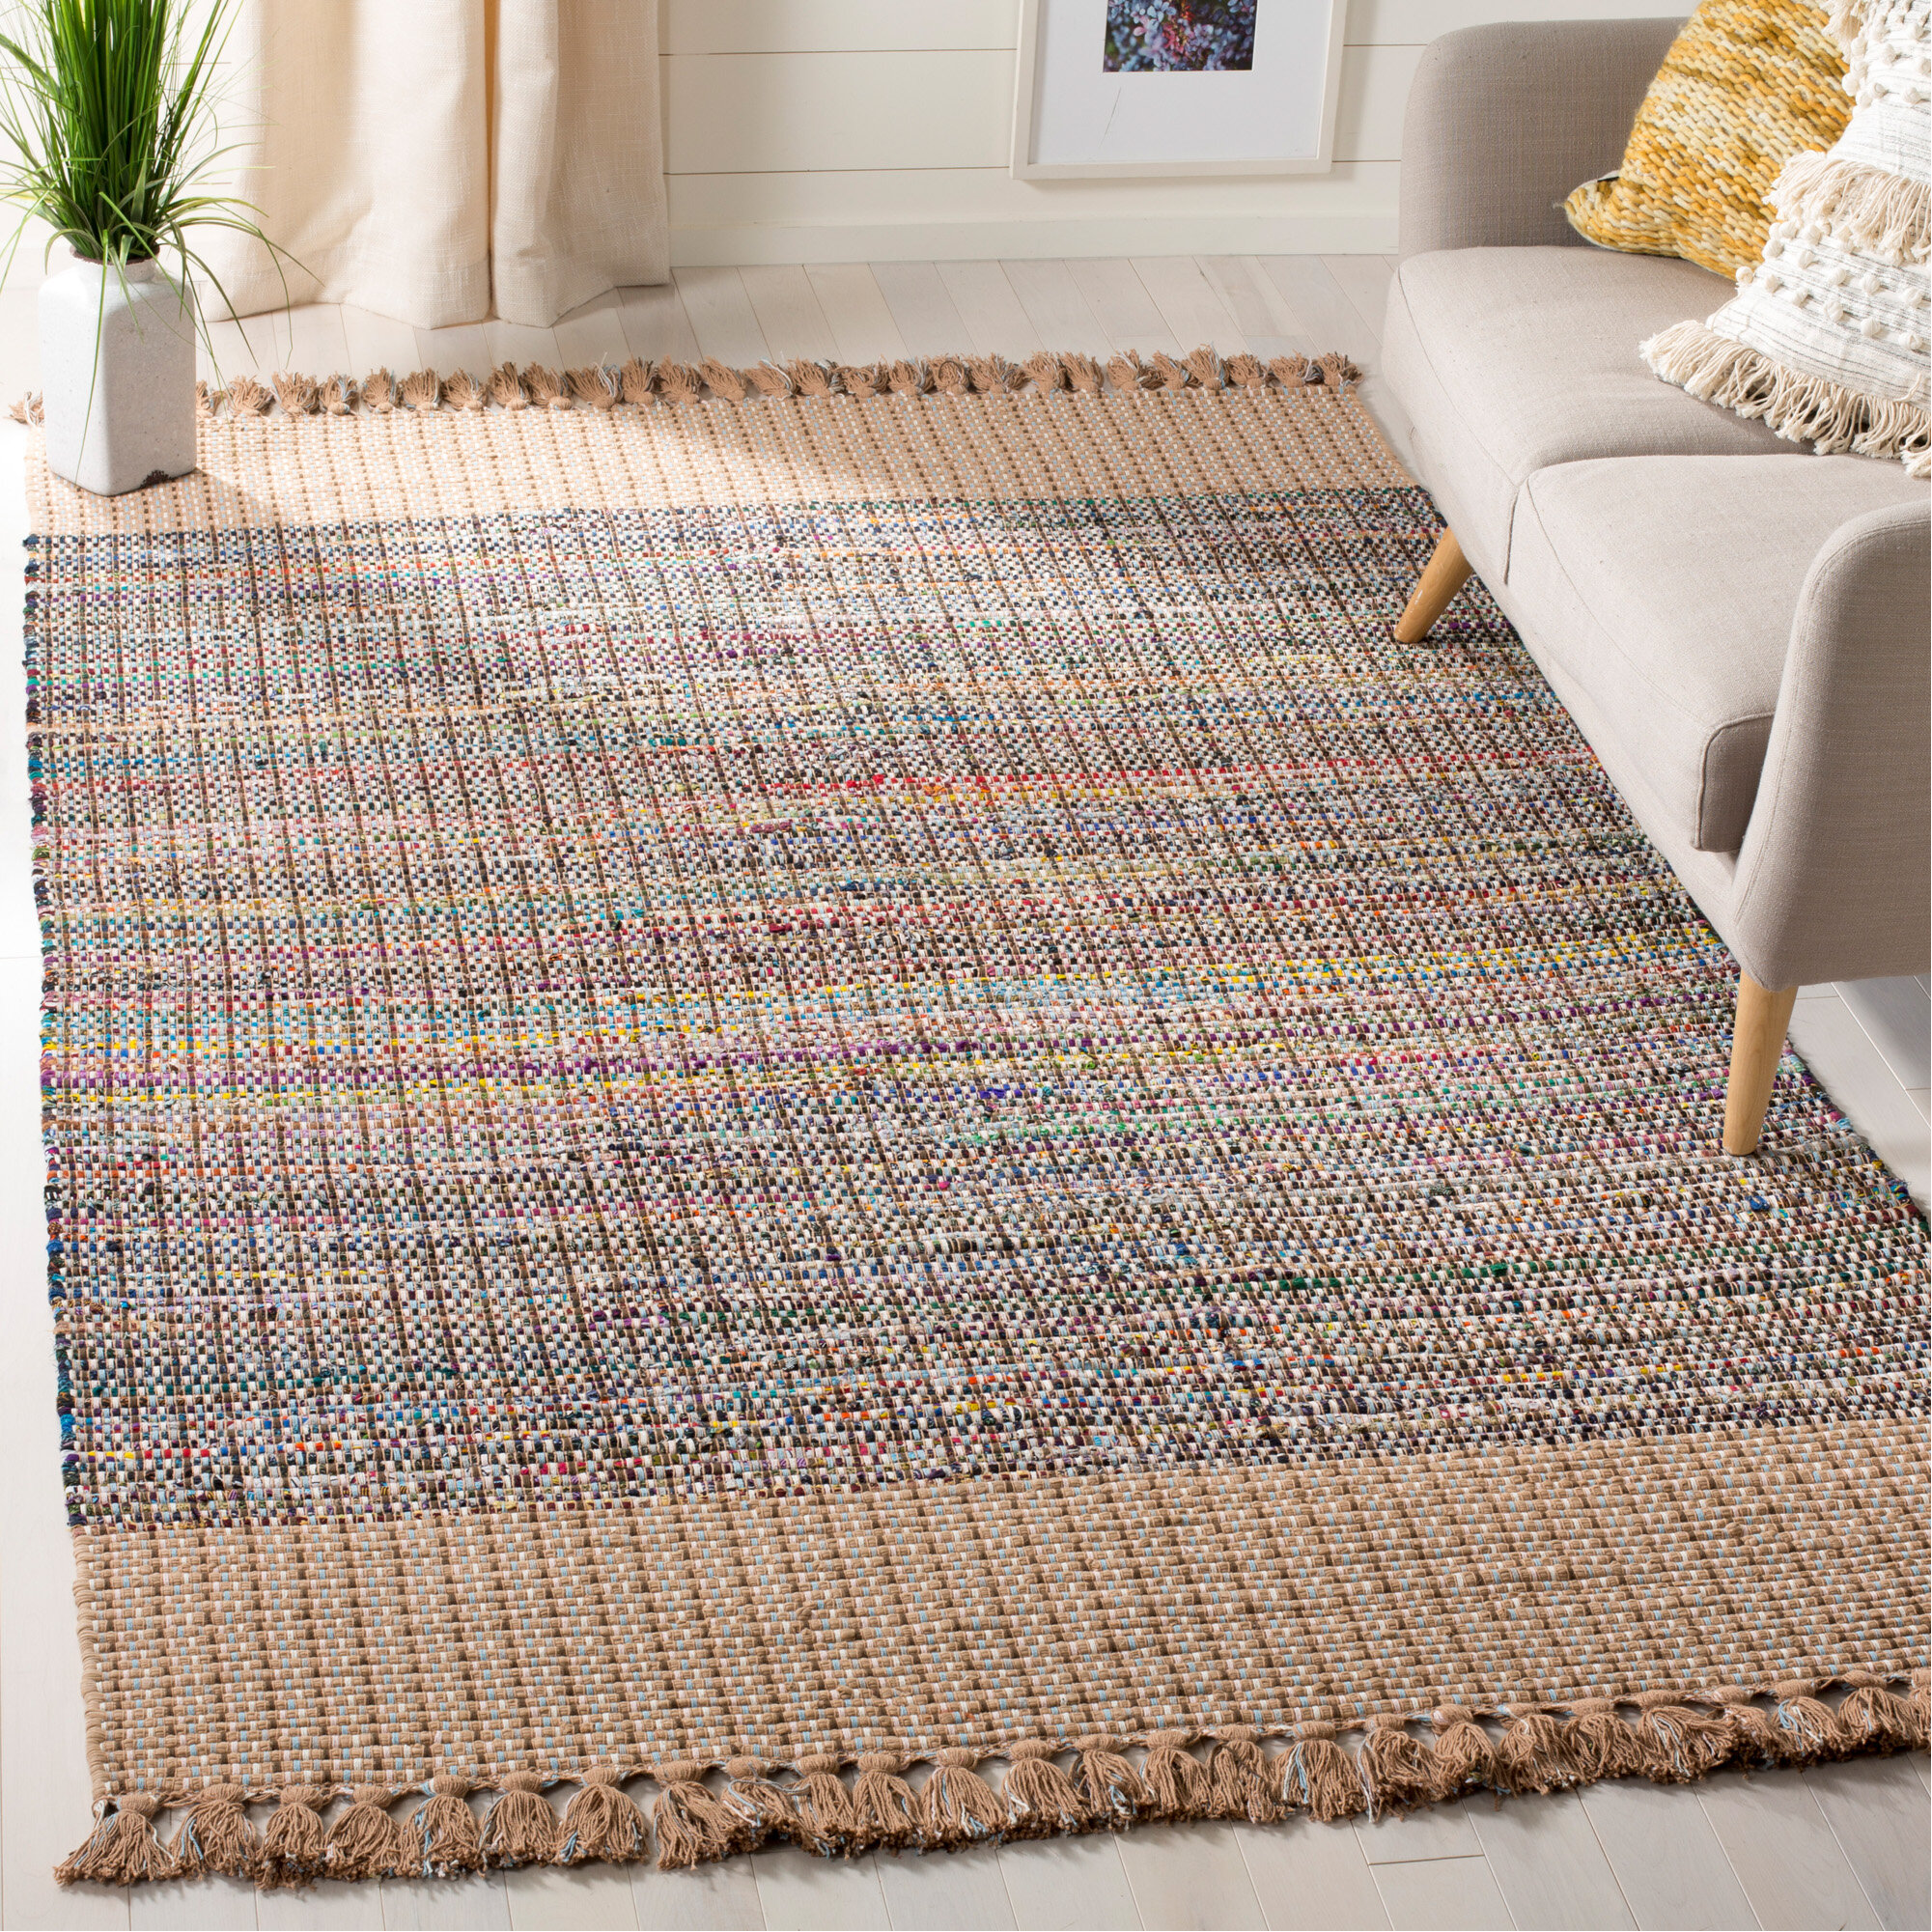 Mack Milo Apolaya Striped Hand Knotted Cotton Beige Gray Blue Area Rug Reviews Wayfair